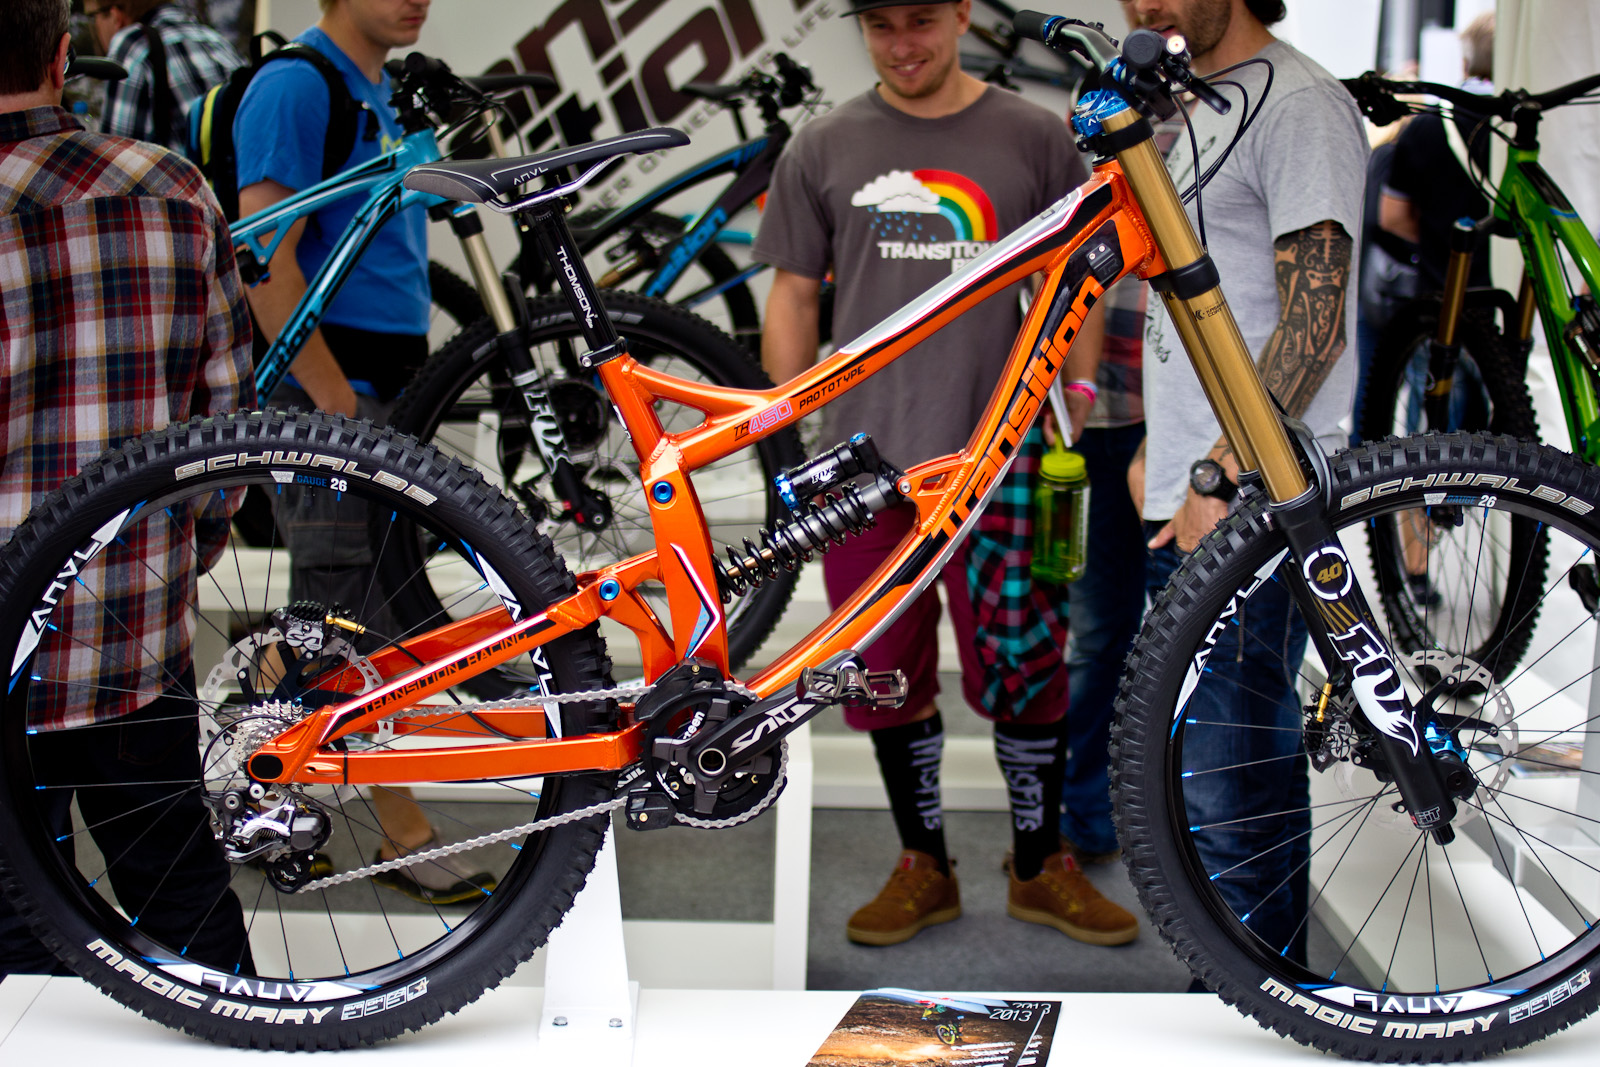 Redesigned 2014 Transition Tr450 Prototype Dh Bike 2014